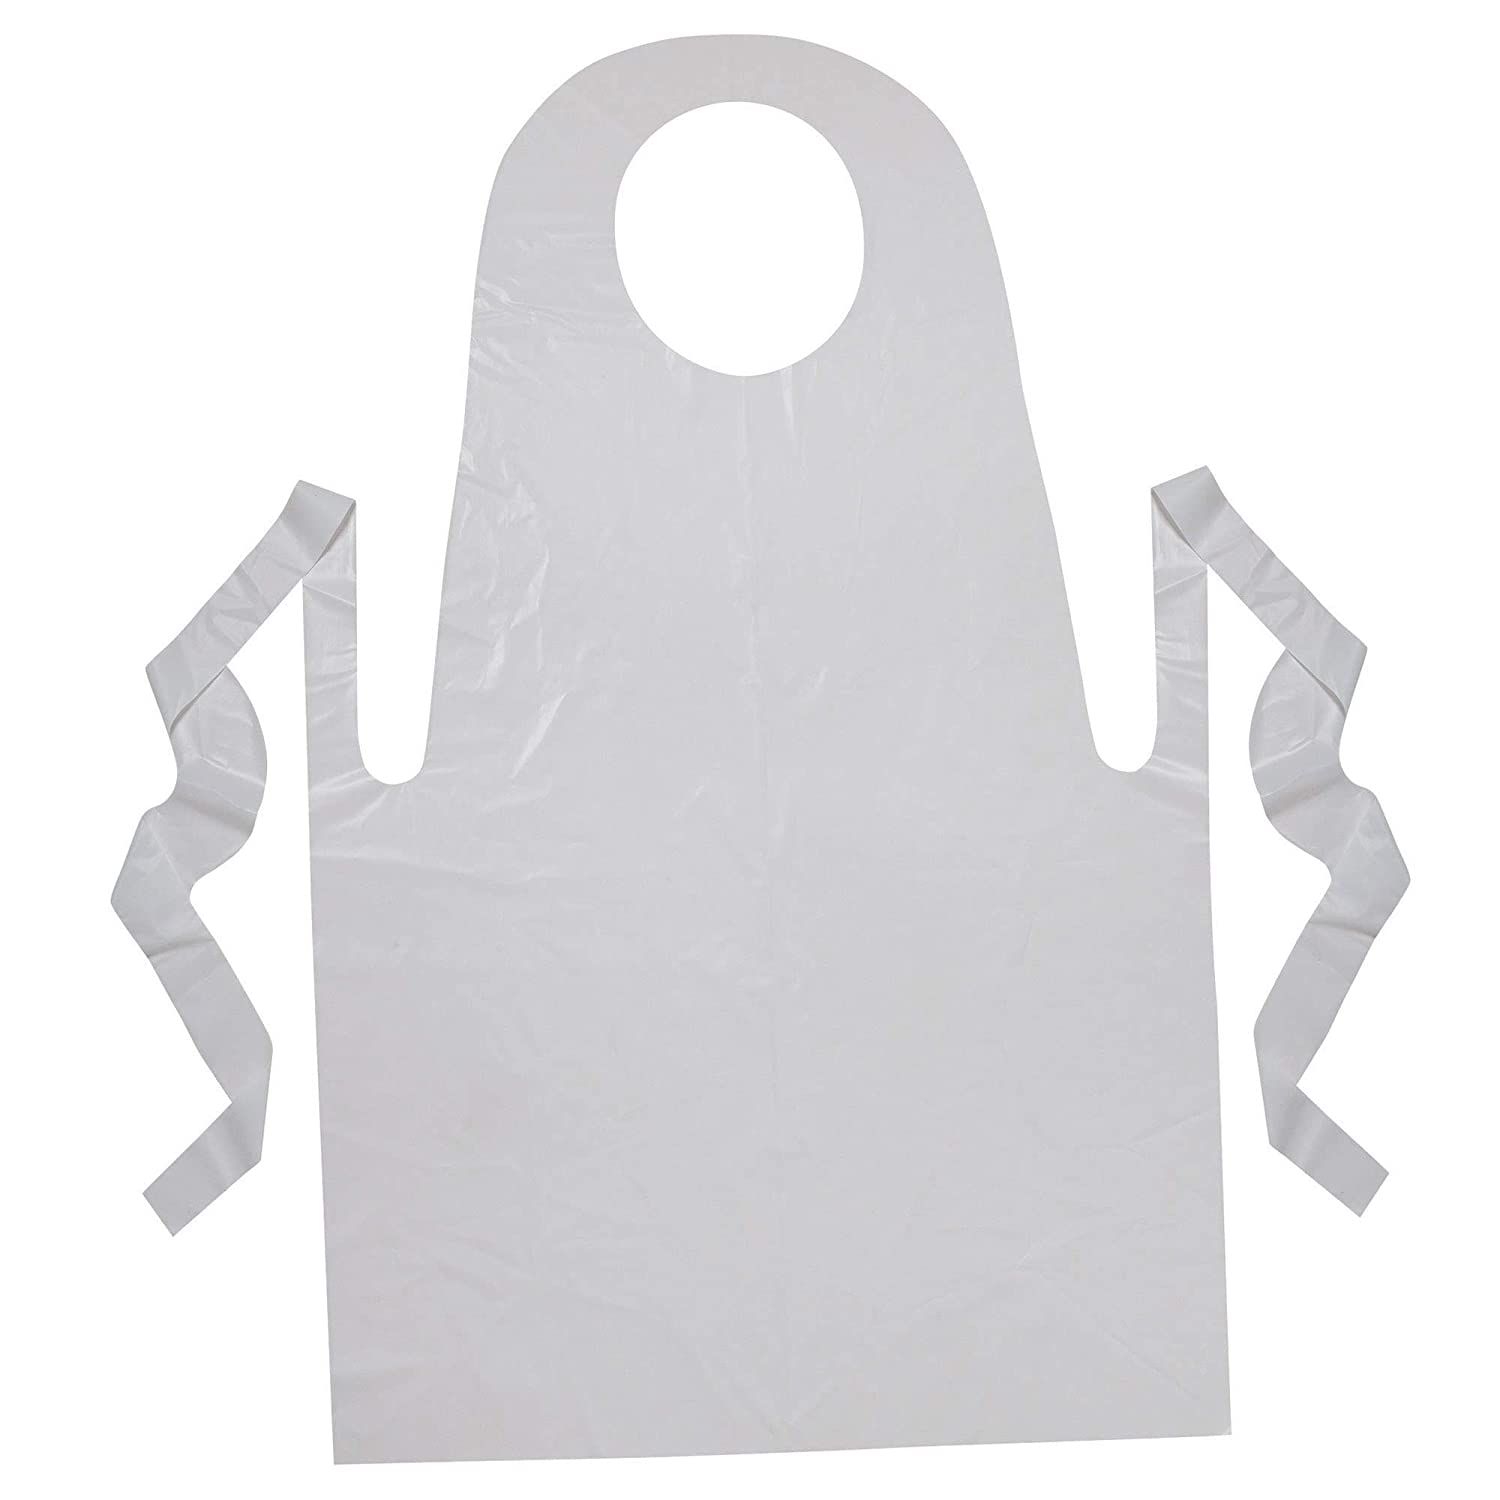 """Creativity Street PAC91240 Youth Disposable Aprons, White, 24"""" x 35"""": Industrial & Scientific"""